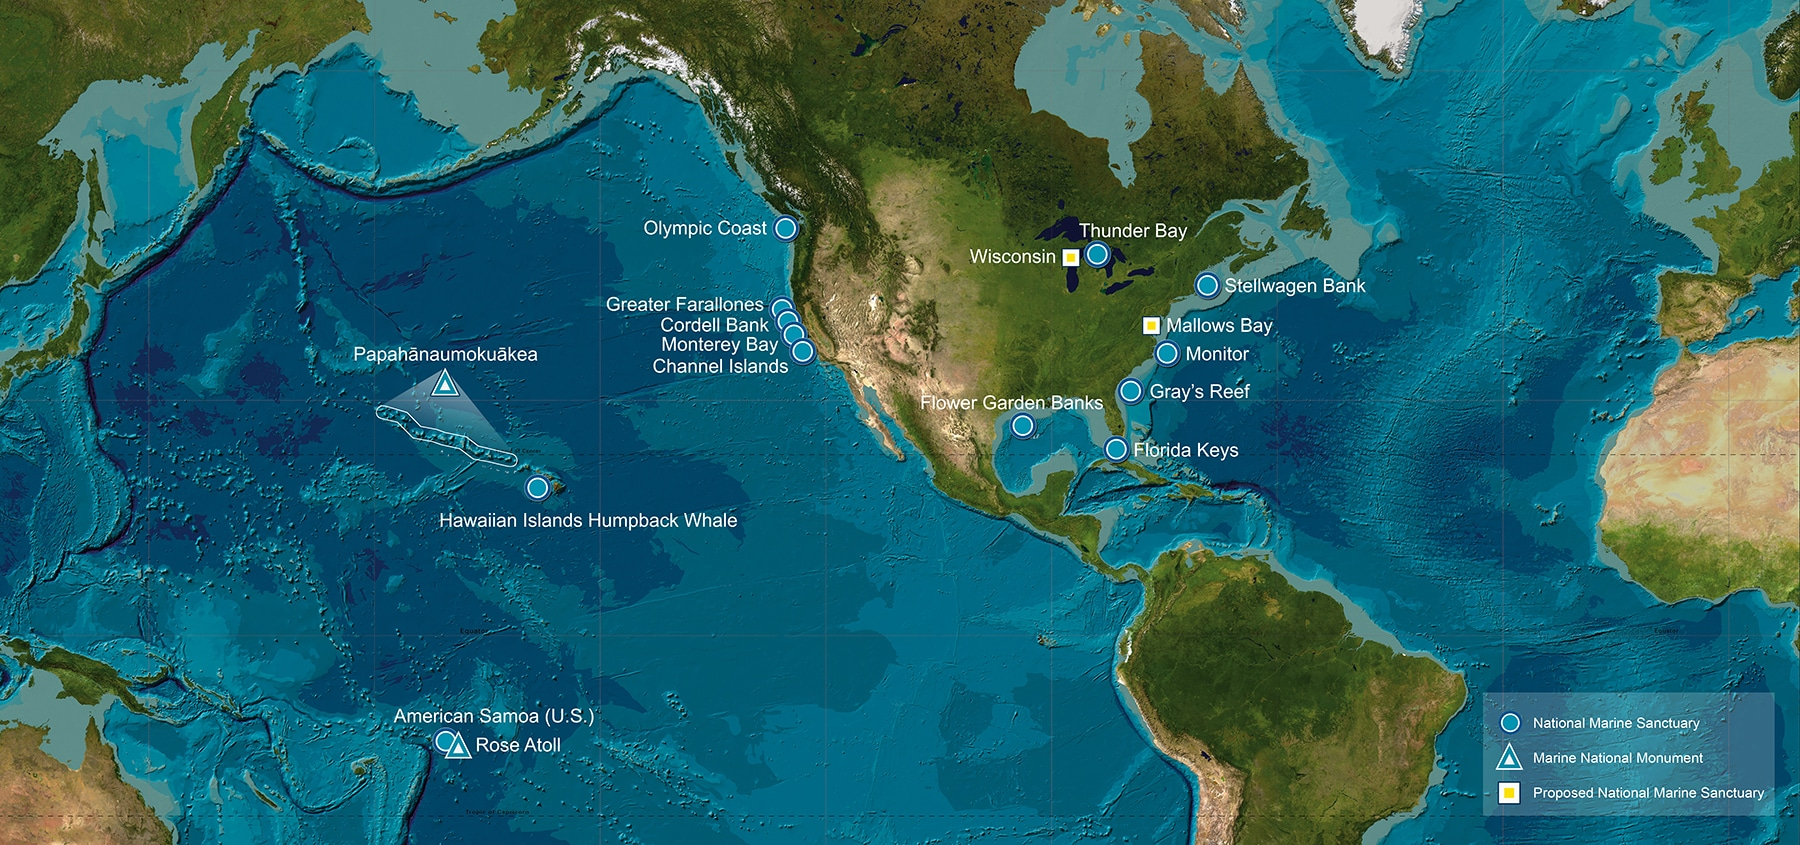 U.S. National Marine Sanctuaries